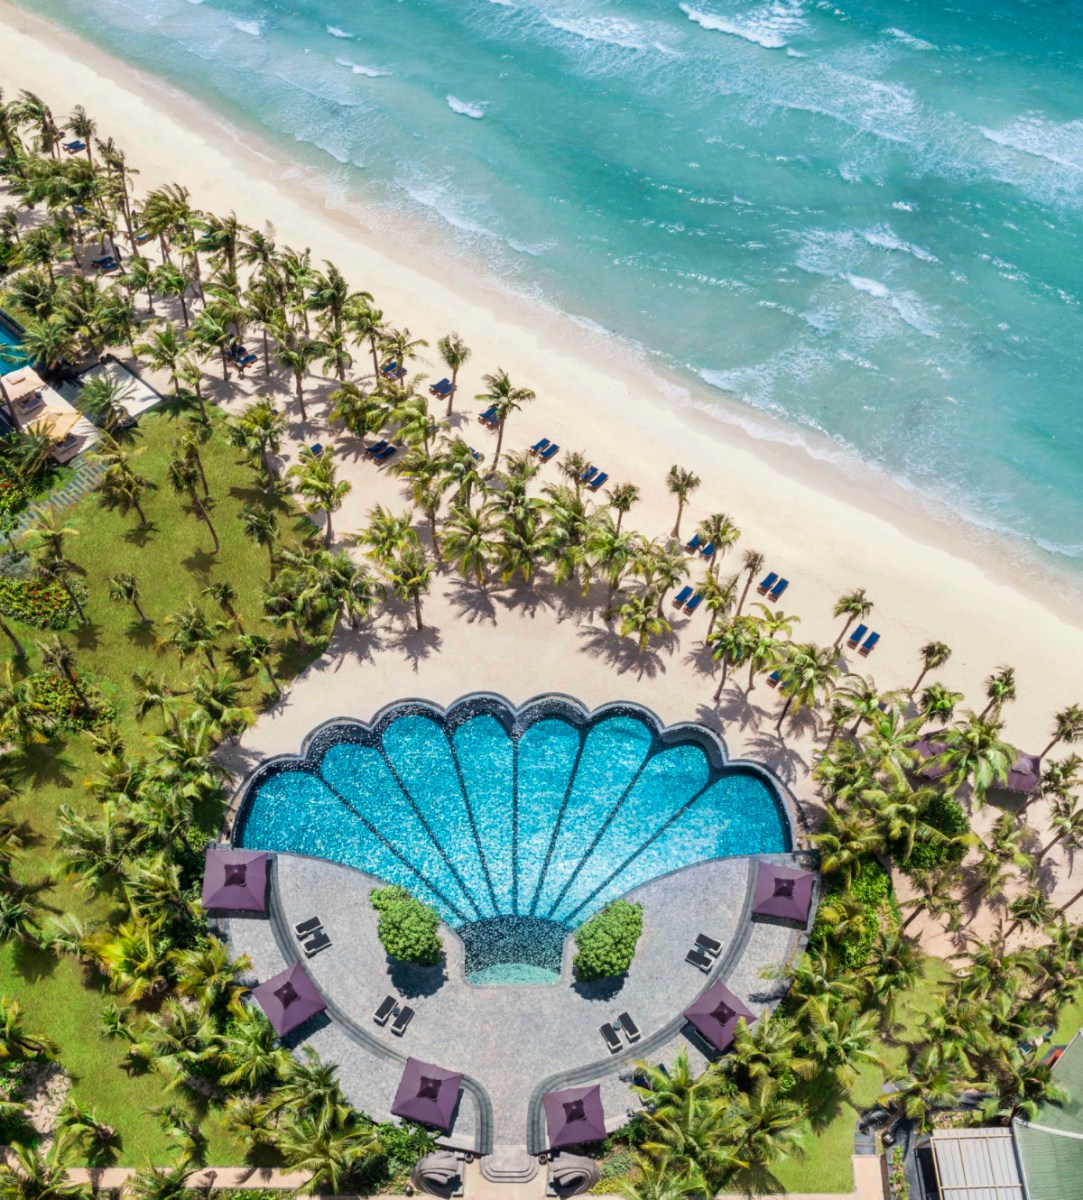 JW Marriott Phu Quoc Emerald Bay Celebrates Second Anniversary